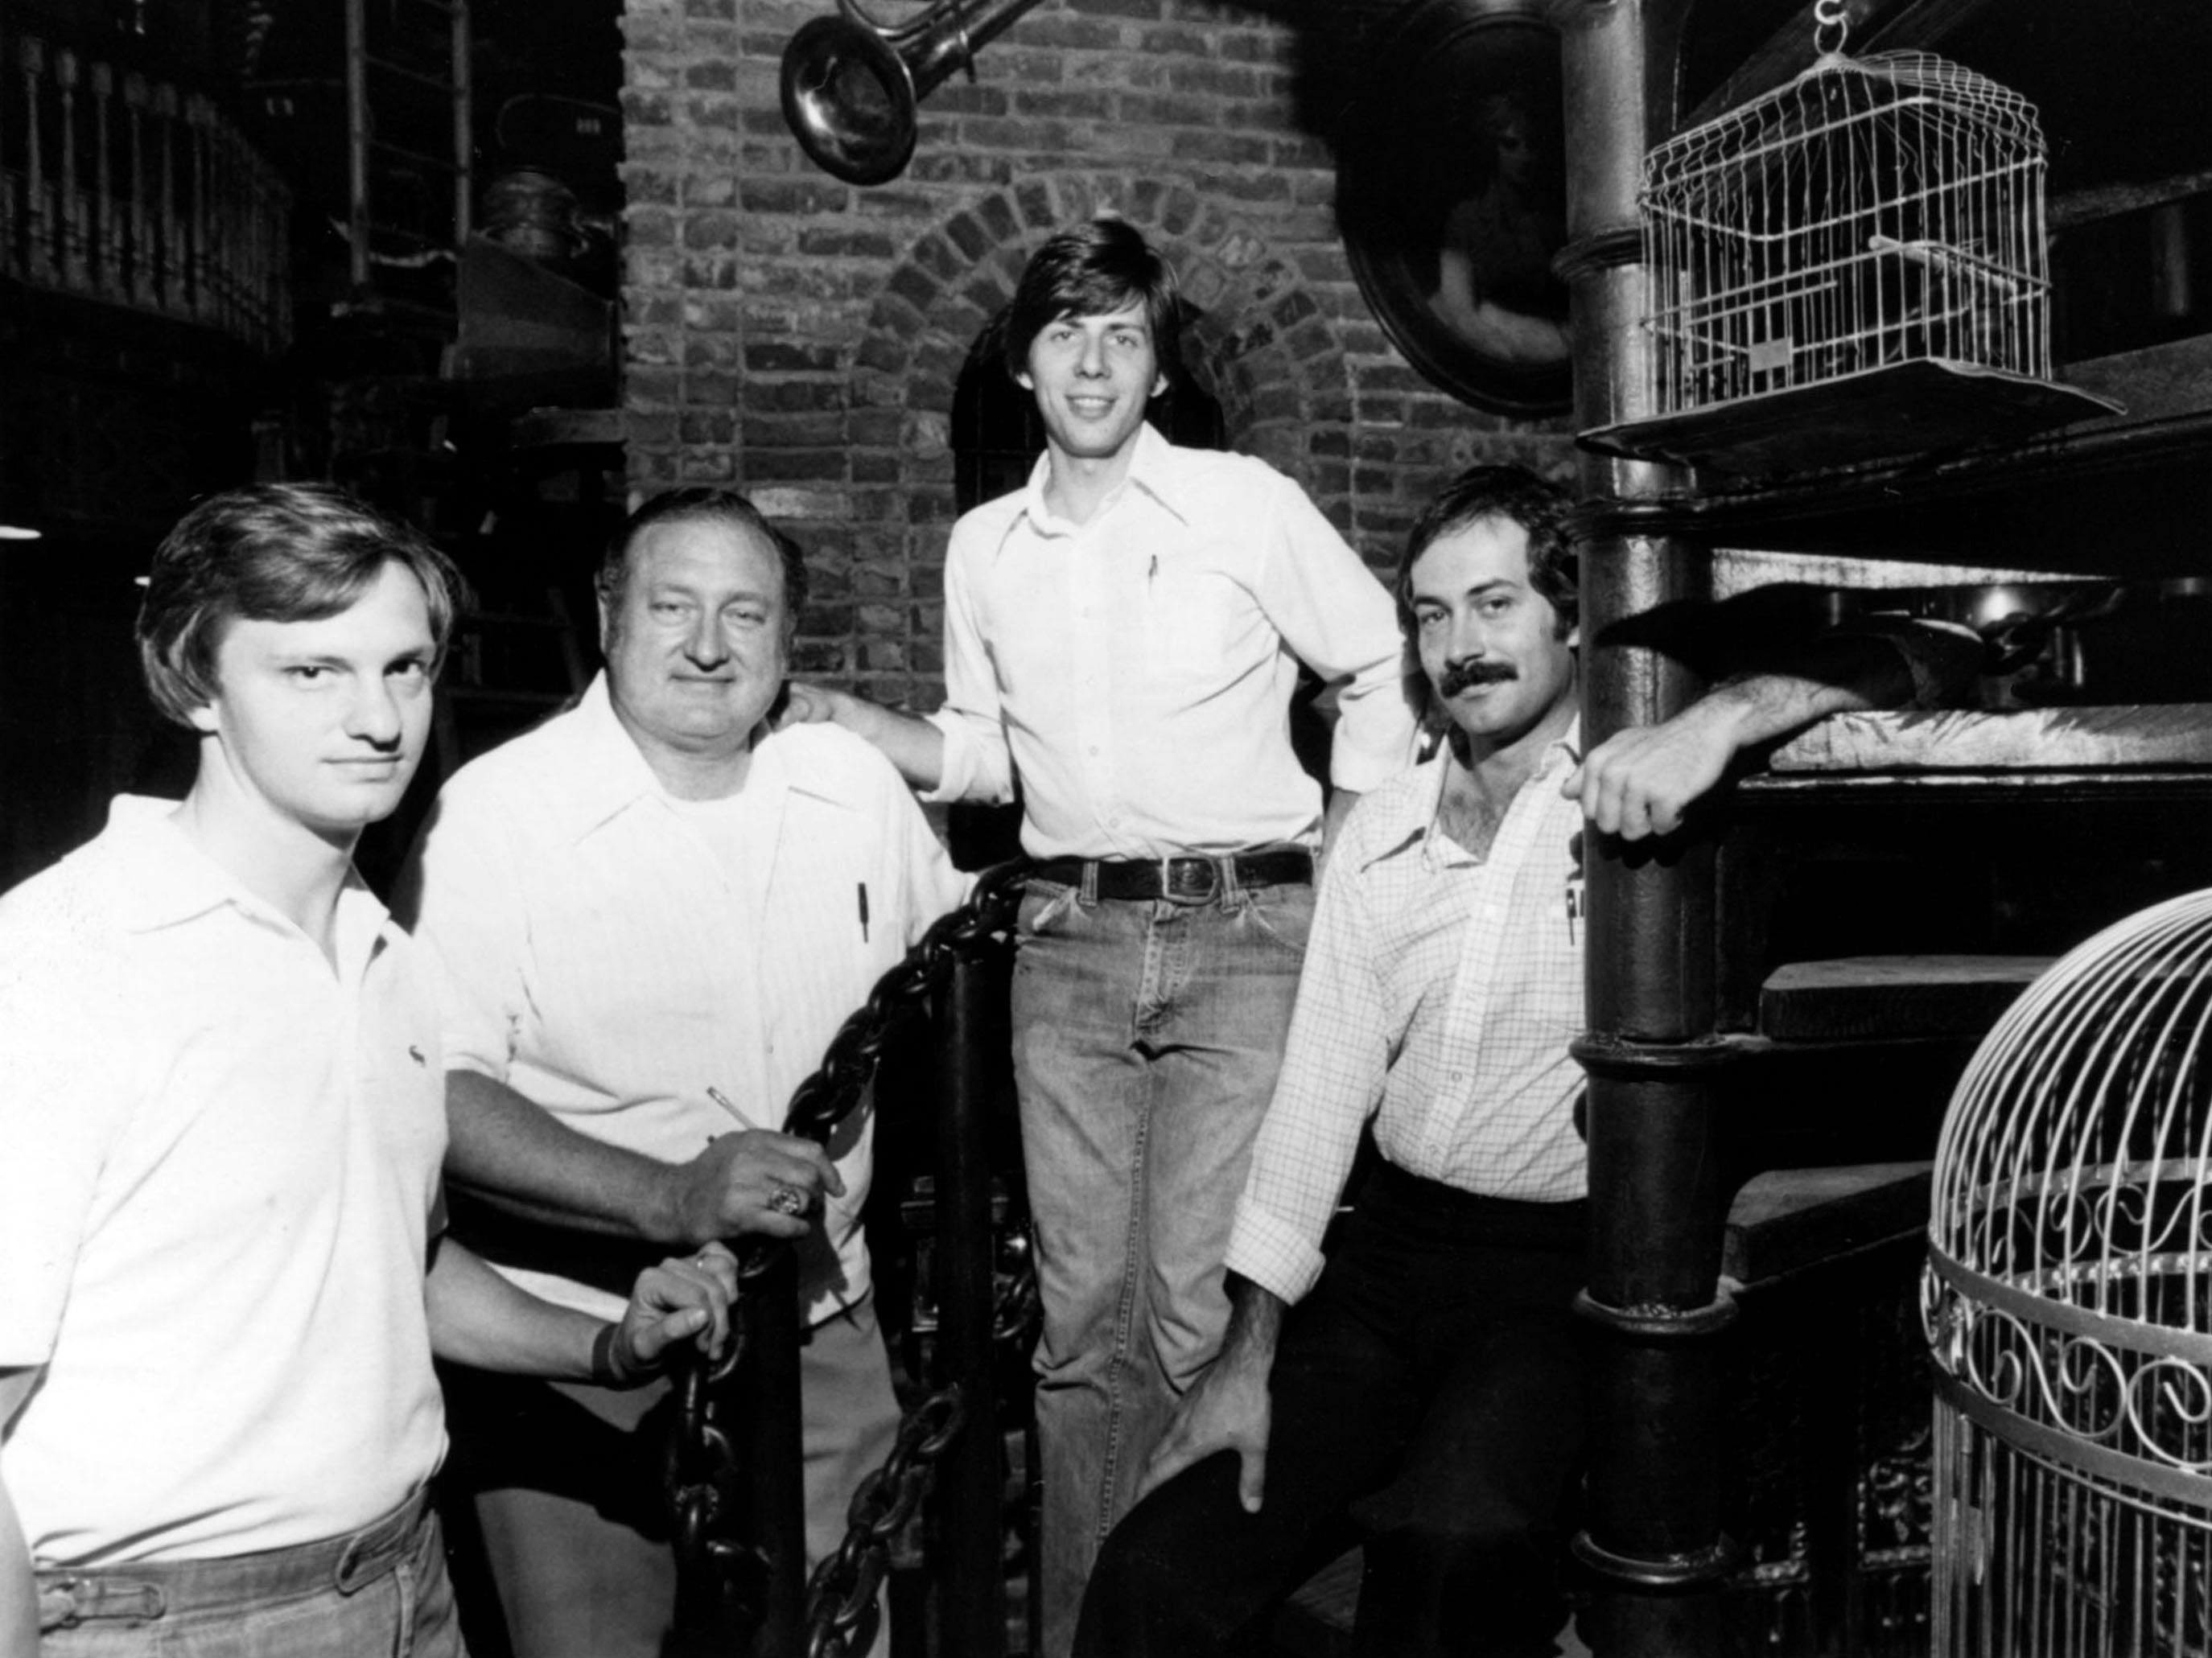 Darryl's 1879 staff in September 1979, from left; John Vick, director of operations; Thad Eure Jr., owner; Pick Chase, assistant manager; and Clyde Ward, manager.